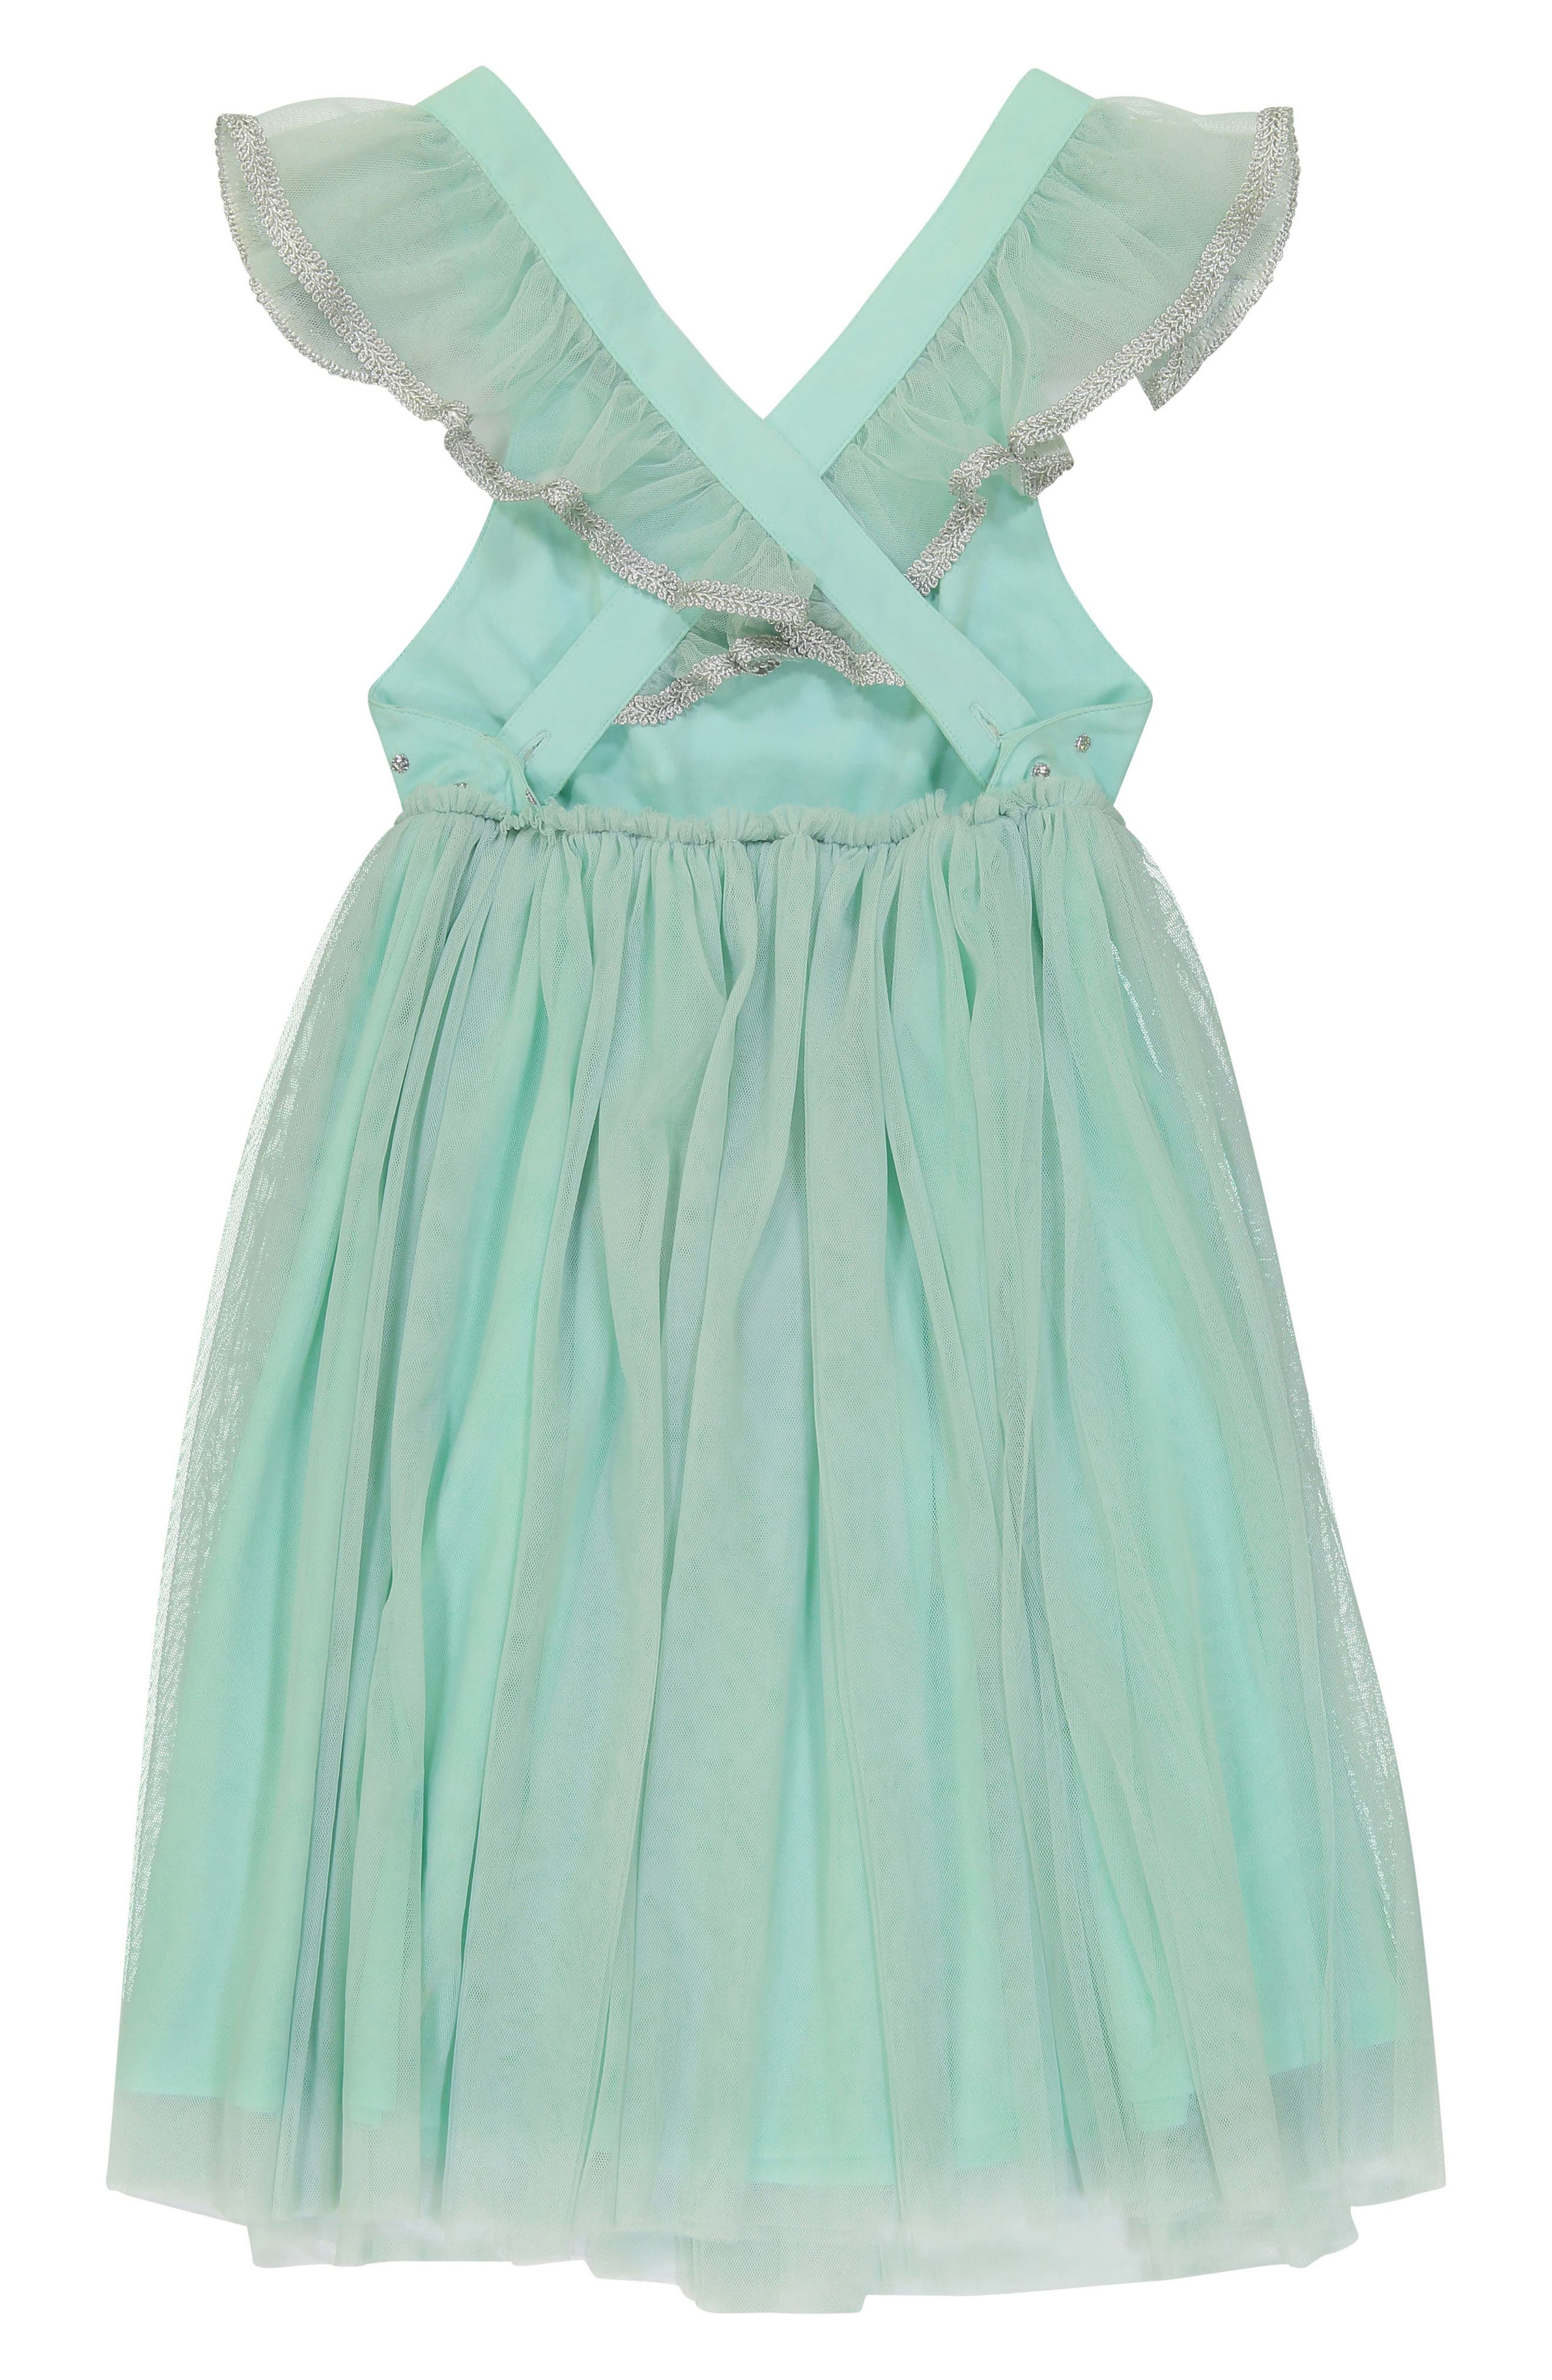 Diya Tulle Sundress,                             Alternate thumbnail 2, color,                             405